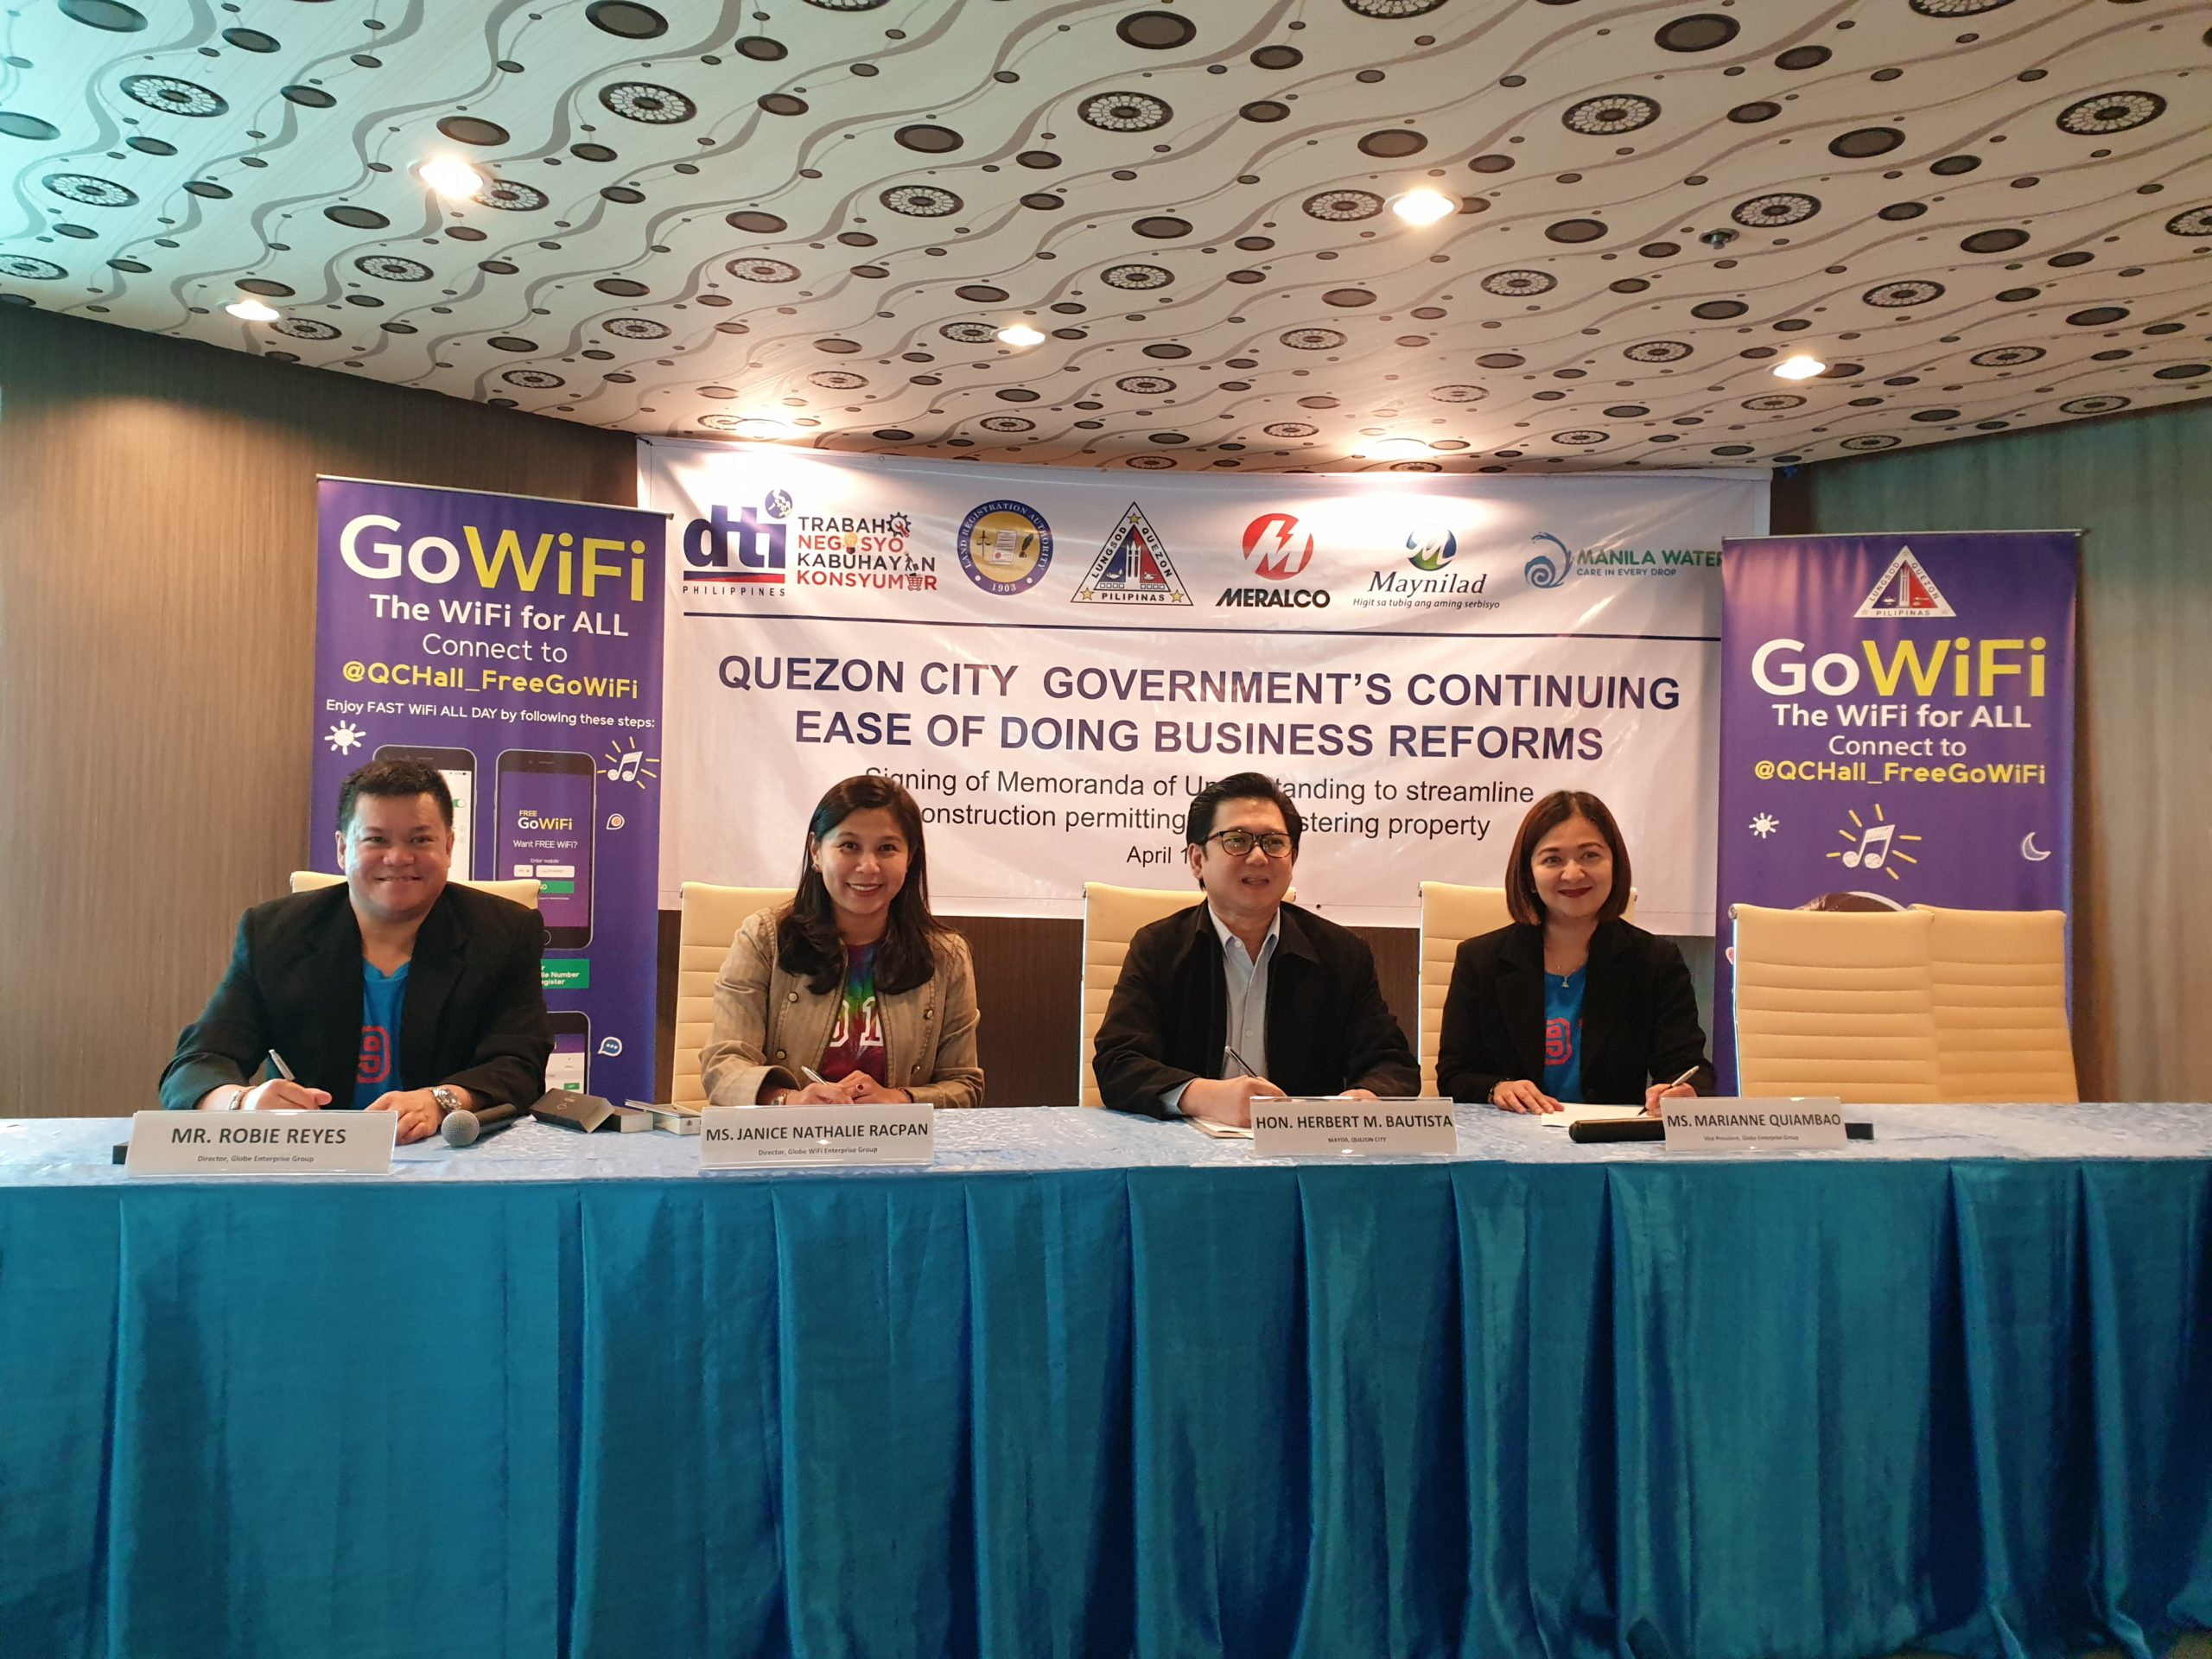 GoWiFi and Quezon City LGU partner for free, high-quality internet connectivity